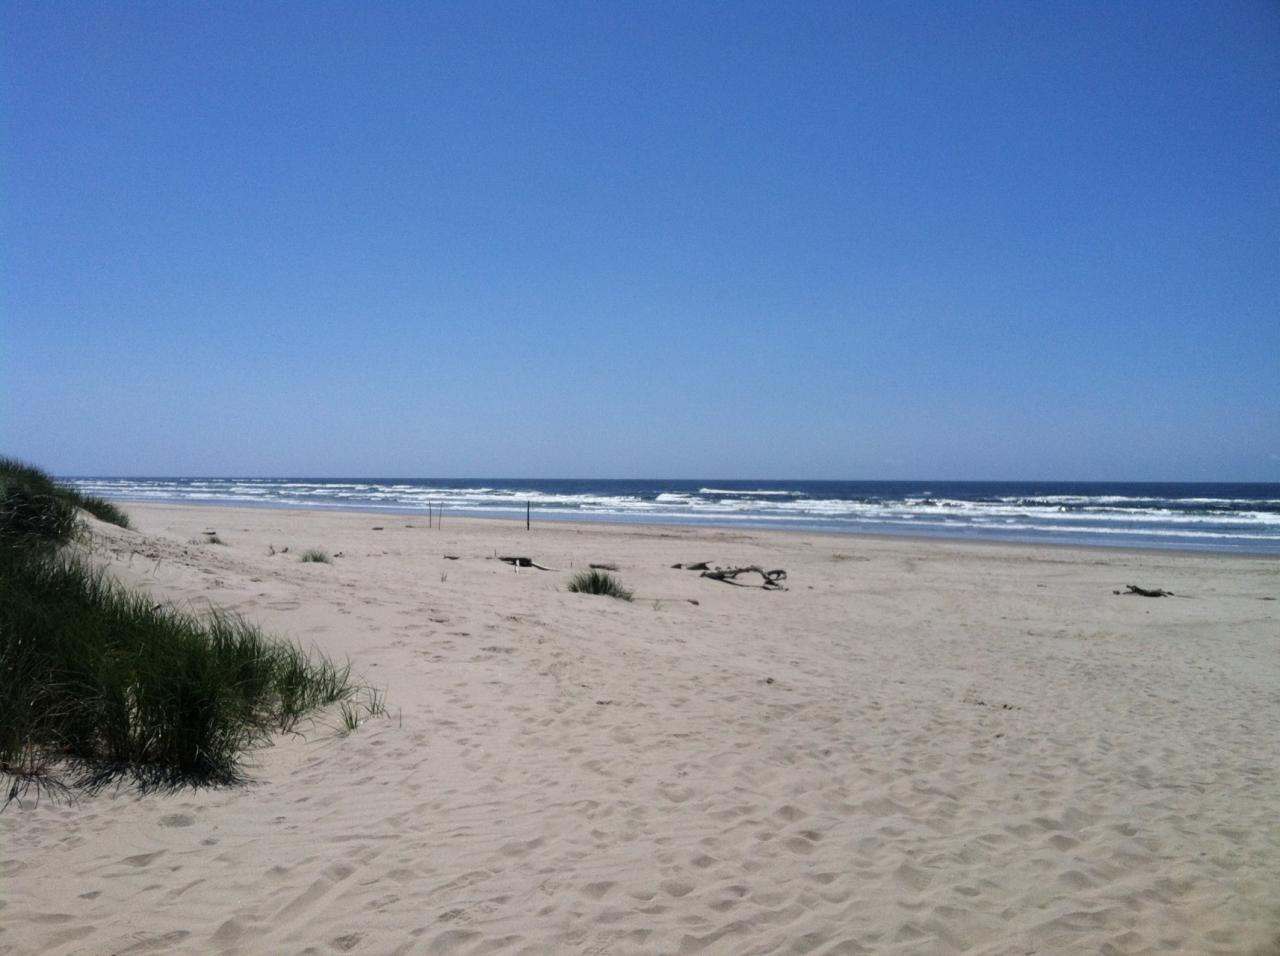 Beach conditions for Bayshore, North Alsea River near Waldport, Oregon on 5/25/2014. Beautiful weather and few people on beach.